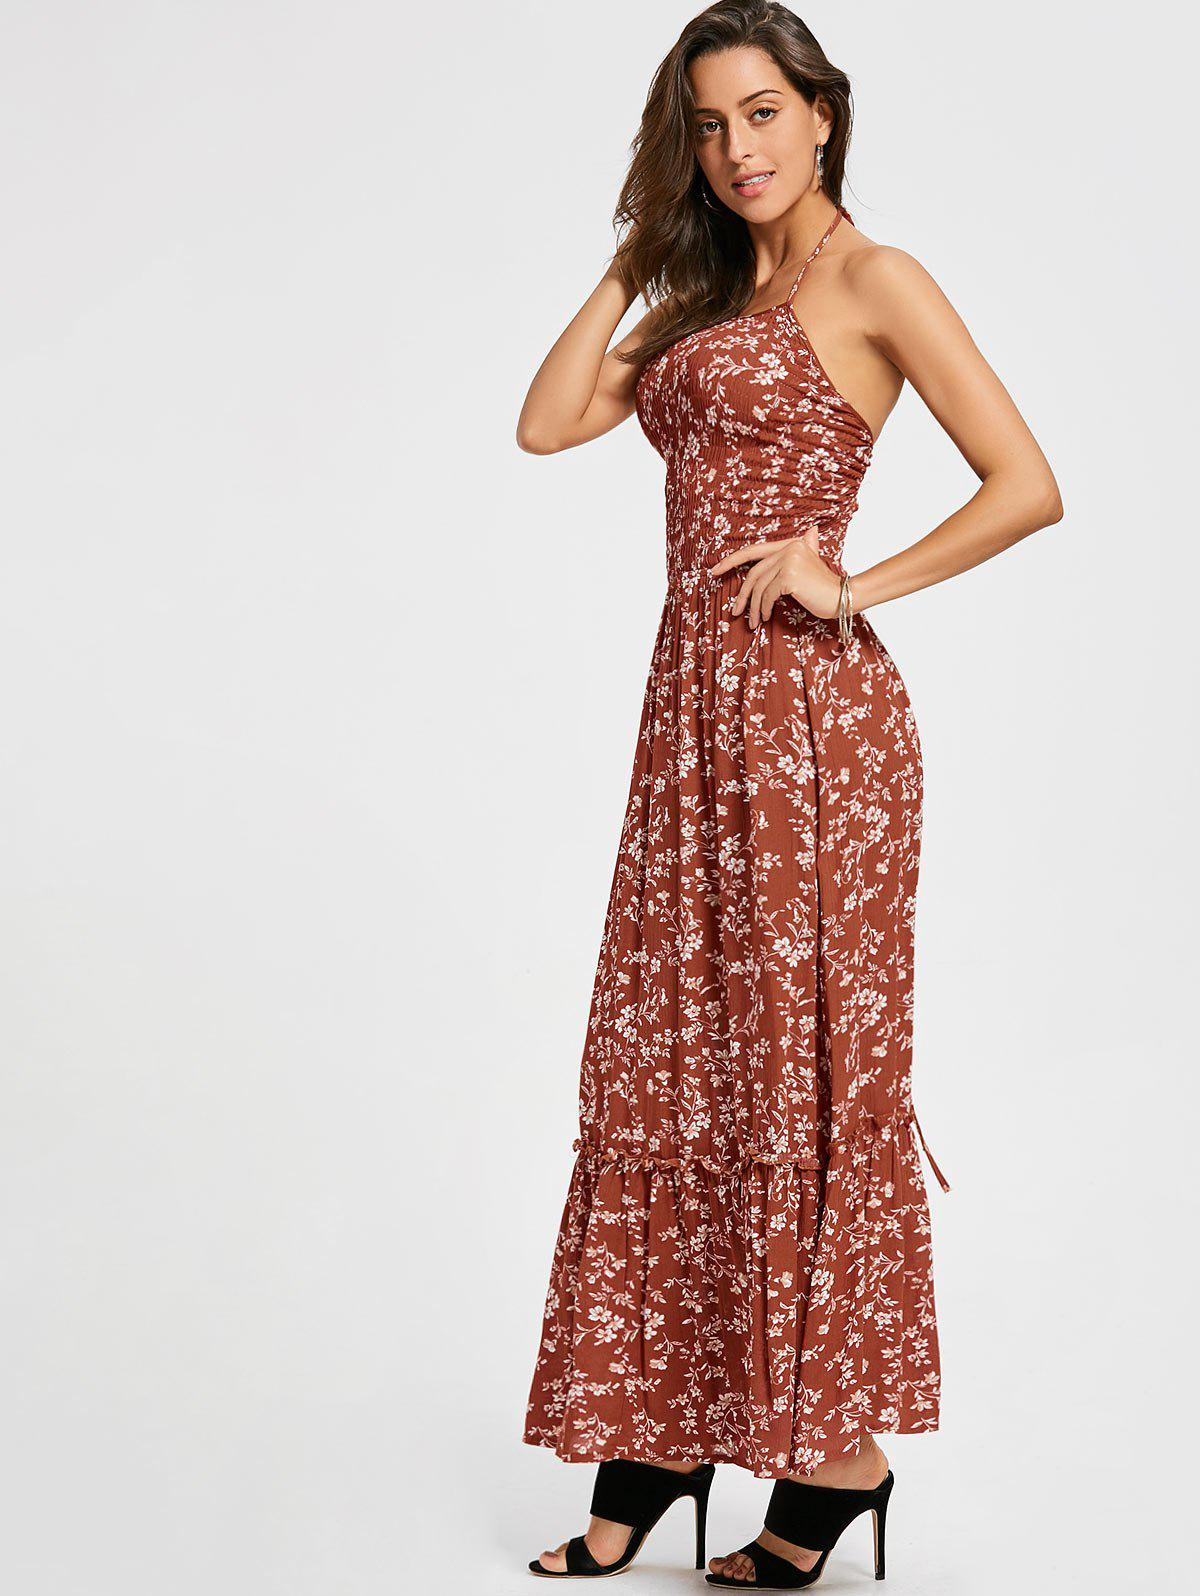 Back Lace Up Floral Maxi Halter Sundress - Rouge XL